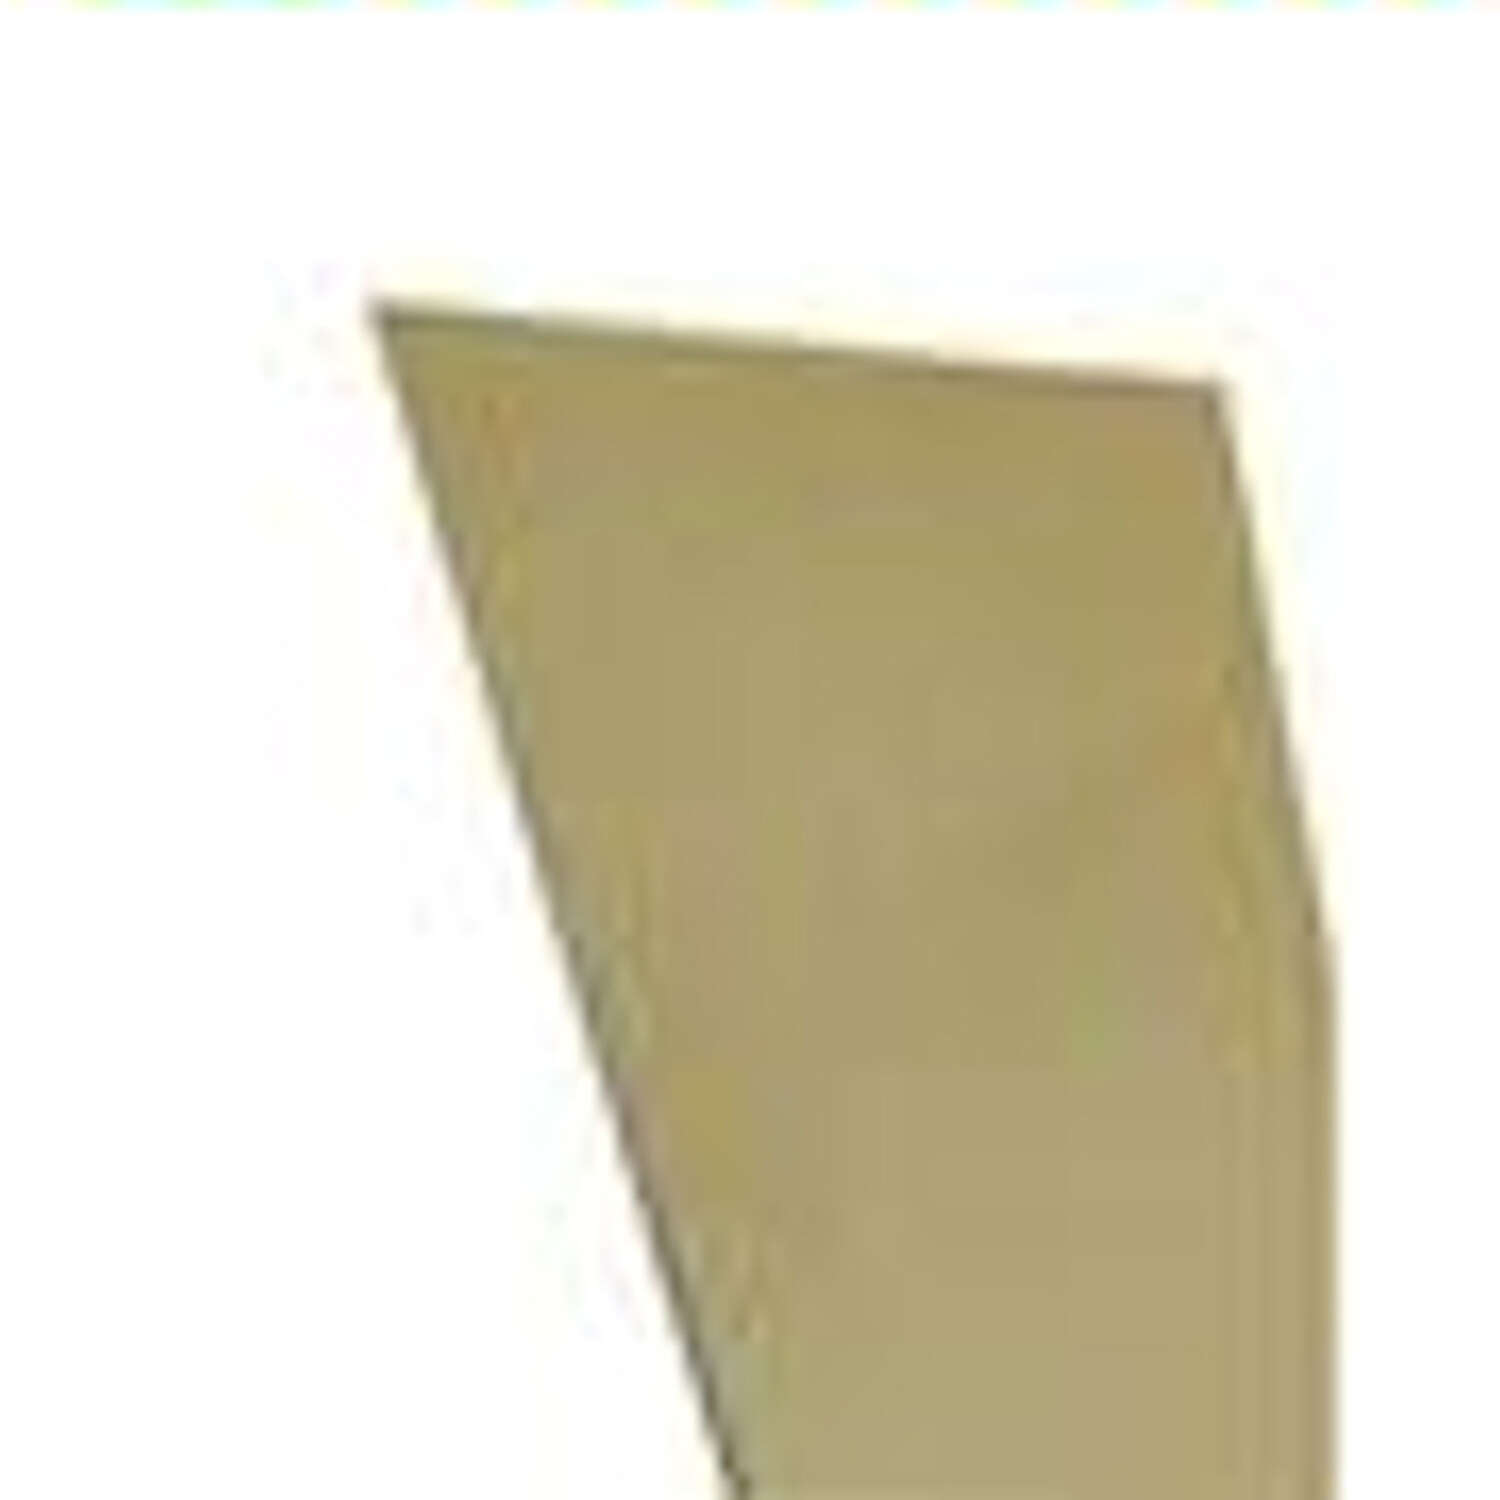 K&S  0.015 in.  x 4 in. W x 10 in. L Brass  Sheet Metal